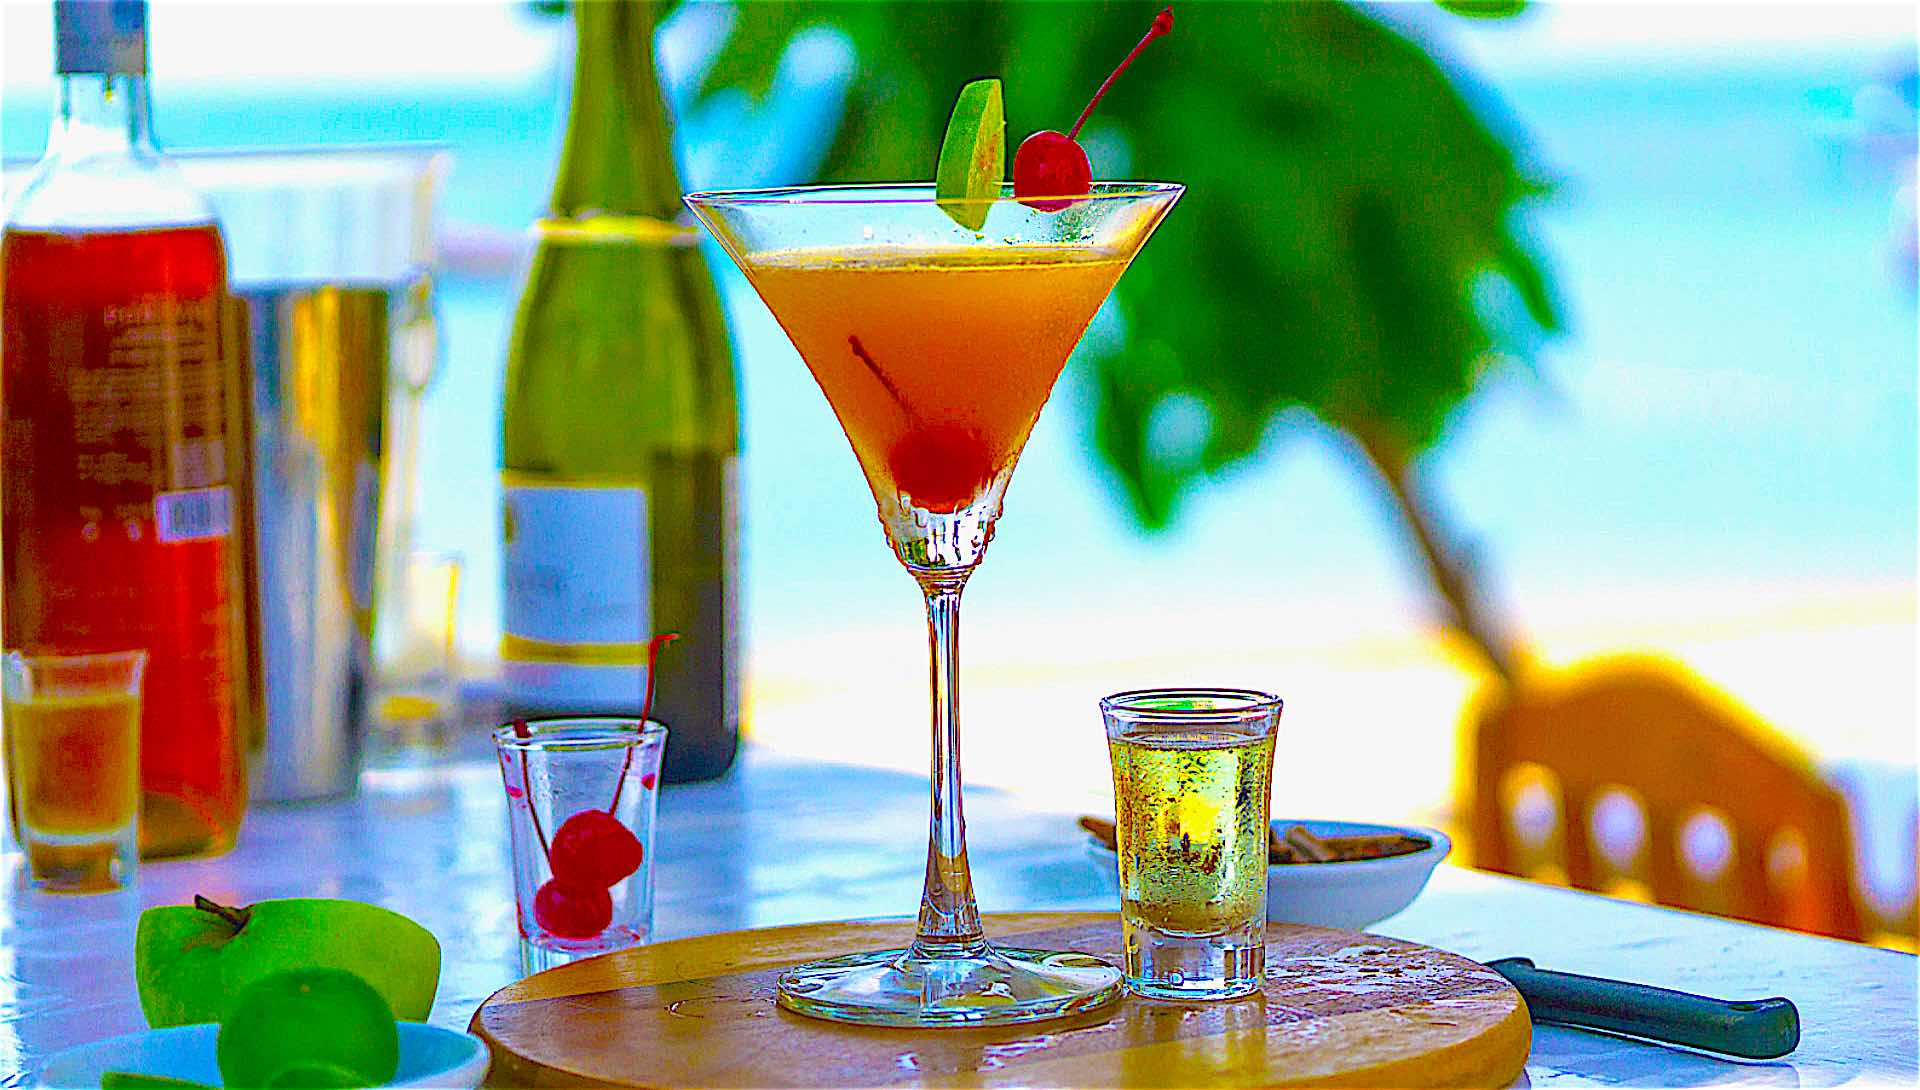 www.thefunkyturtle.com breeze cafe and restaurant koh tao cocktails on beach